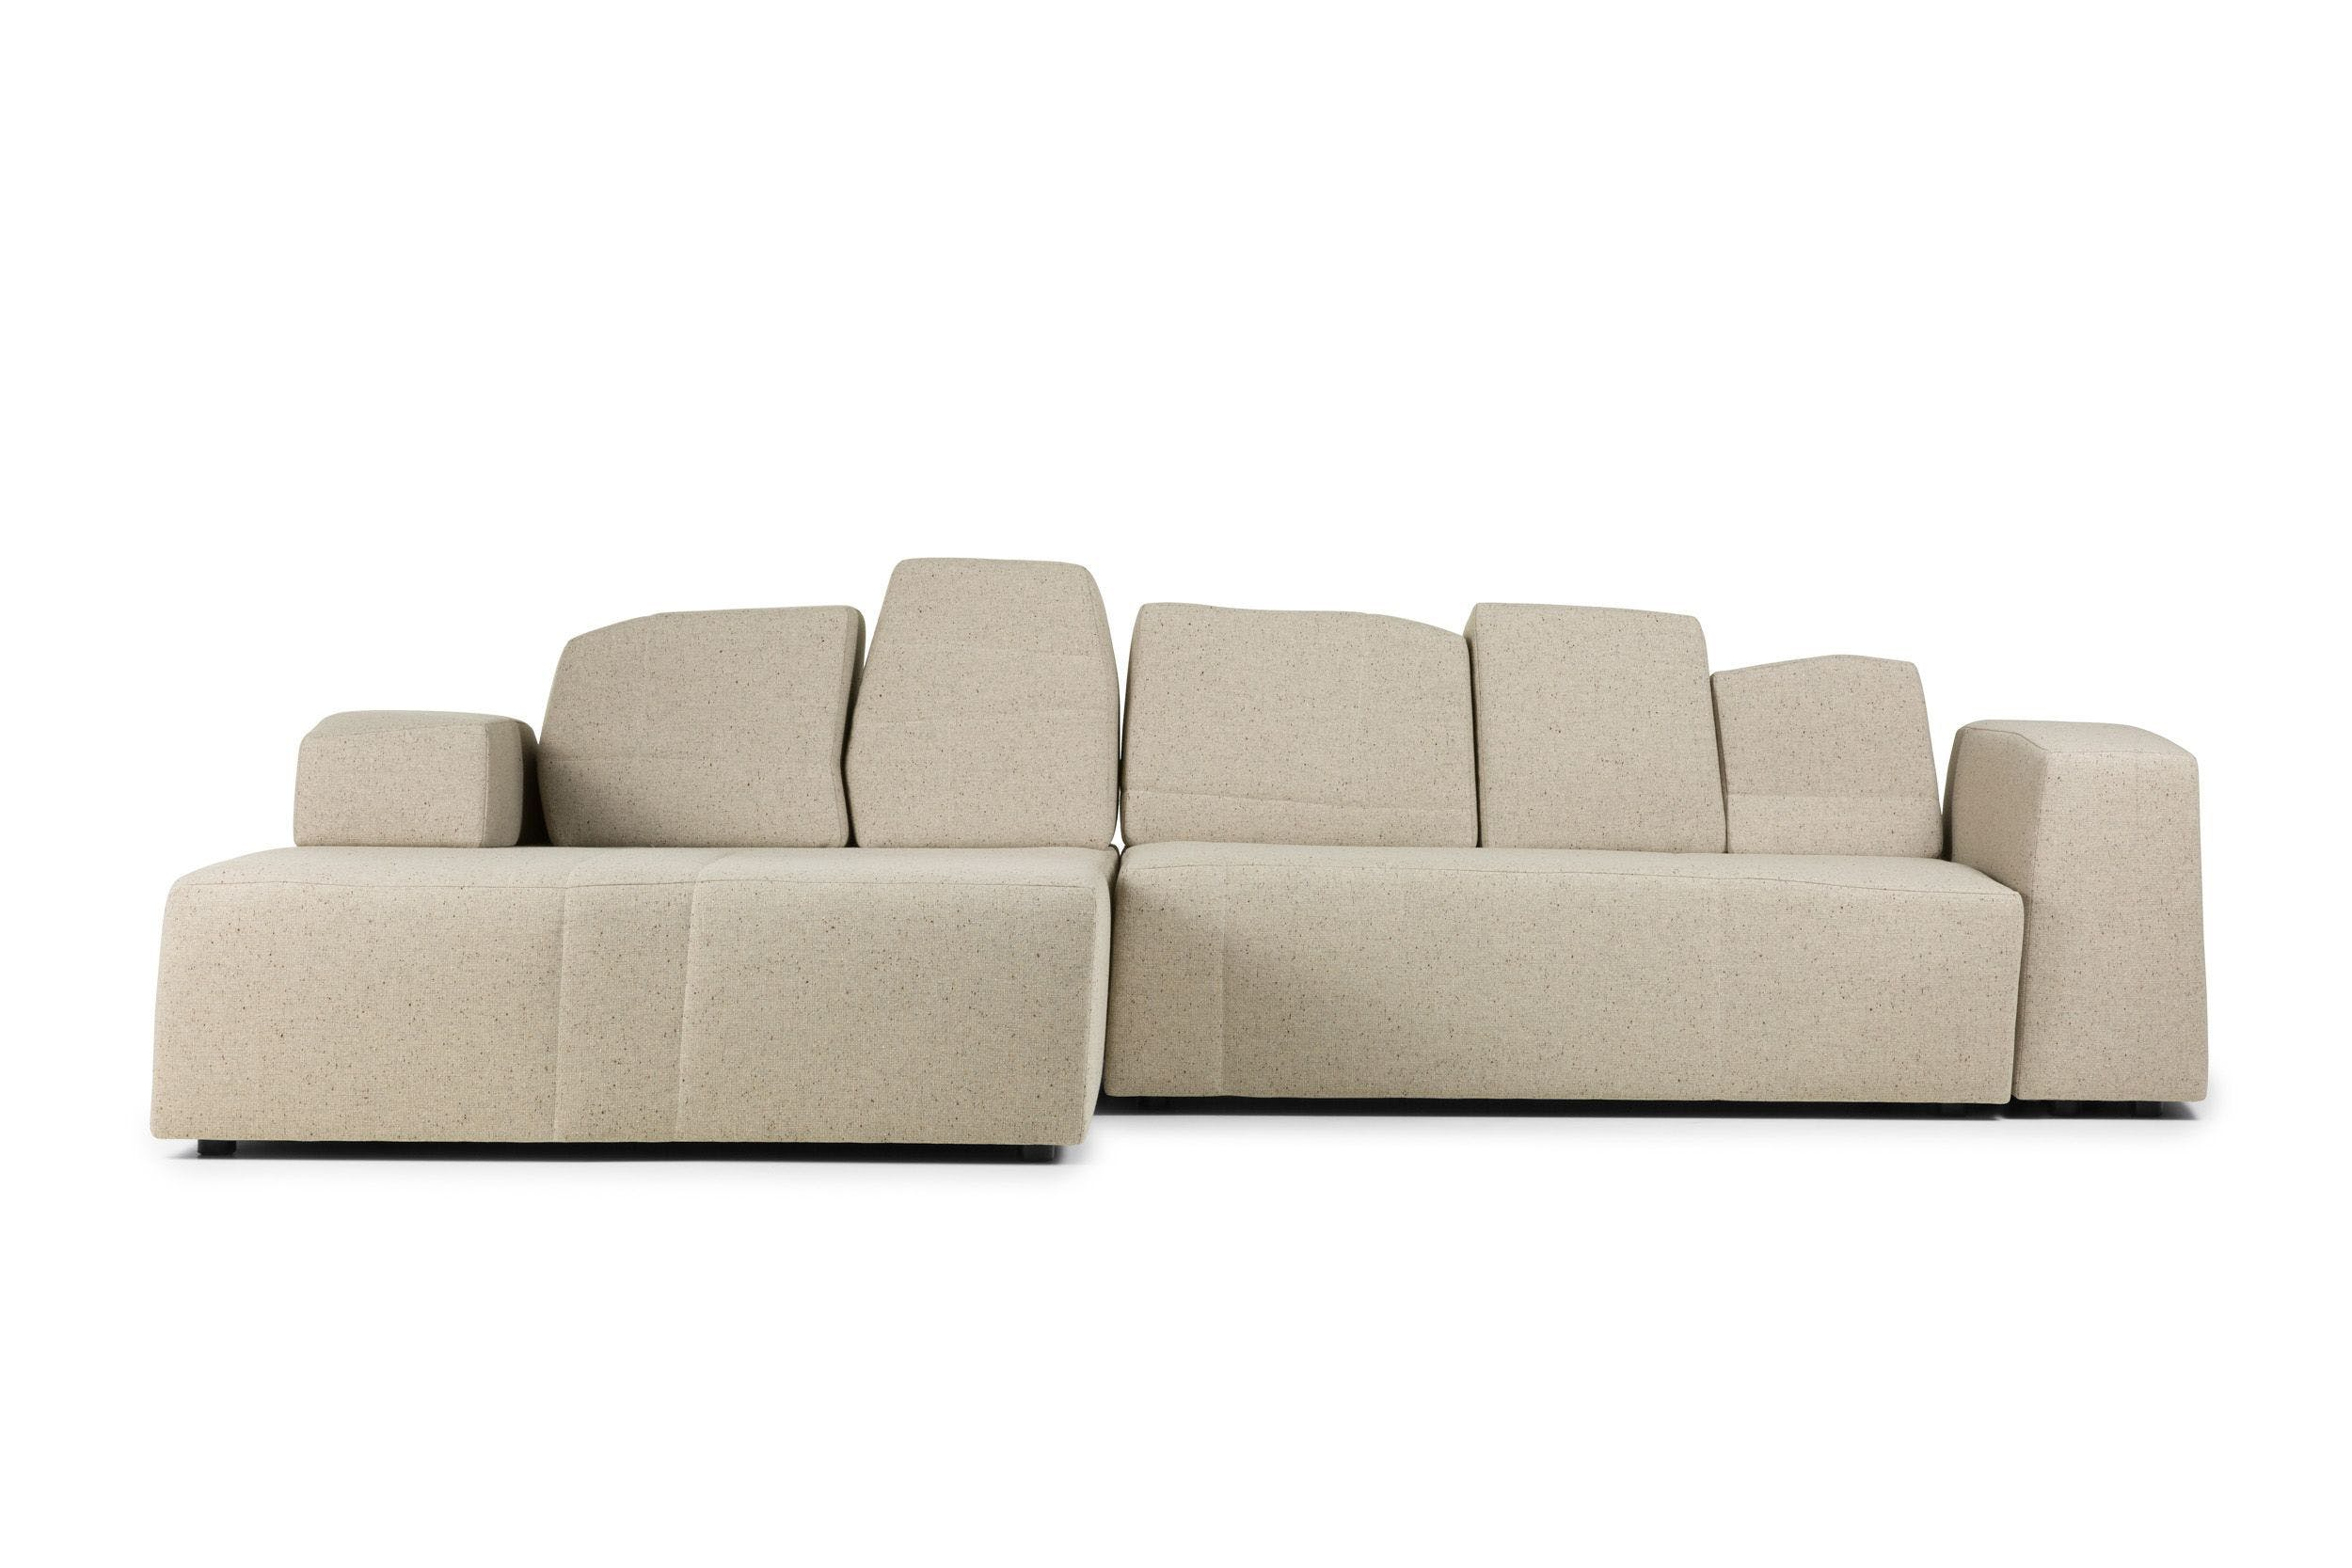 Something Like This Sofa Solis Paper Front 1 Moooi Web